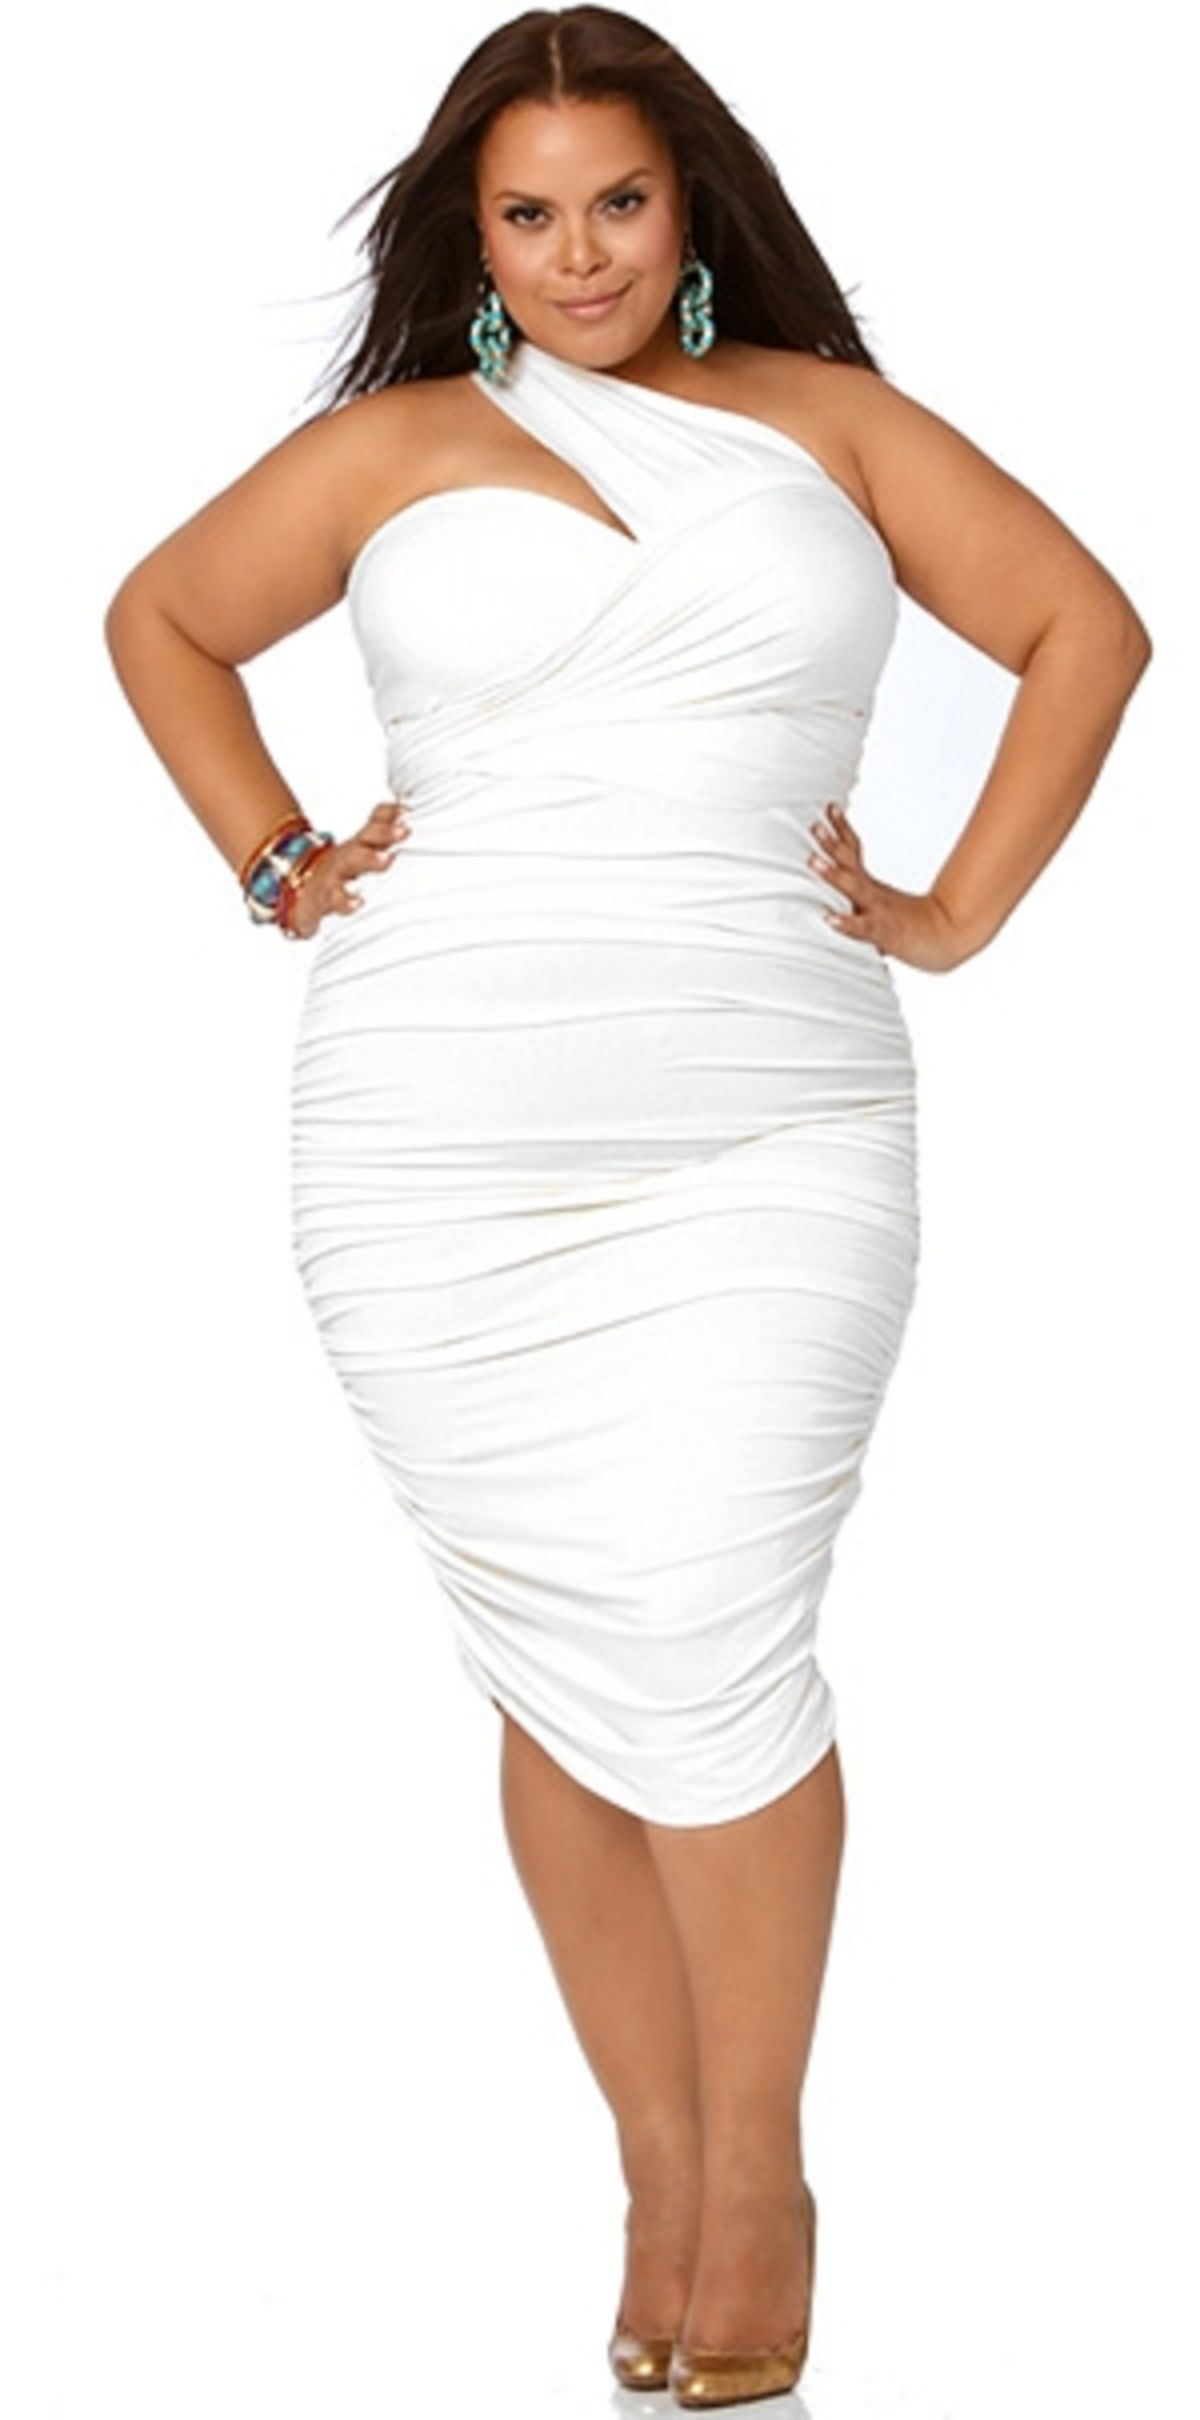 Summer 2012 Plus Size Trends: White Hot | Inspirations for ...